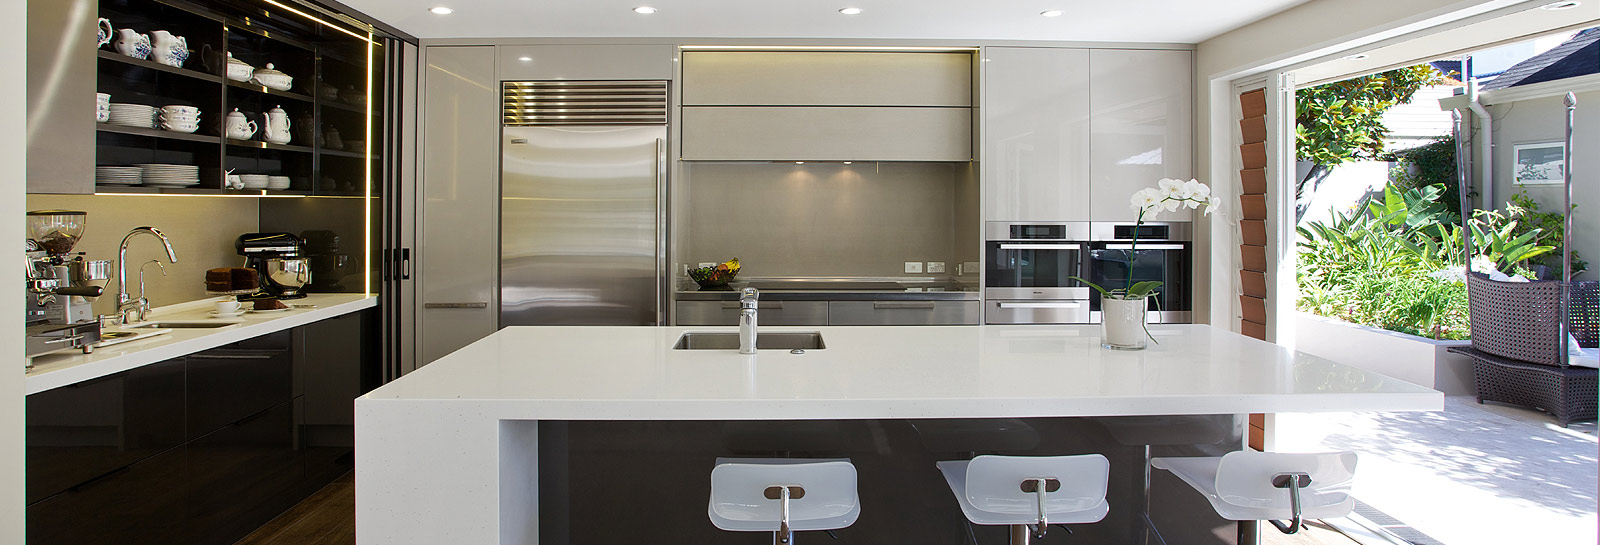 9.-Milford-Design-Kitchen-A